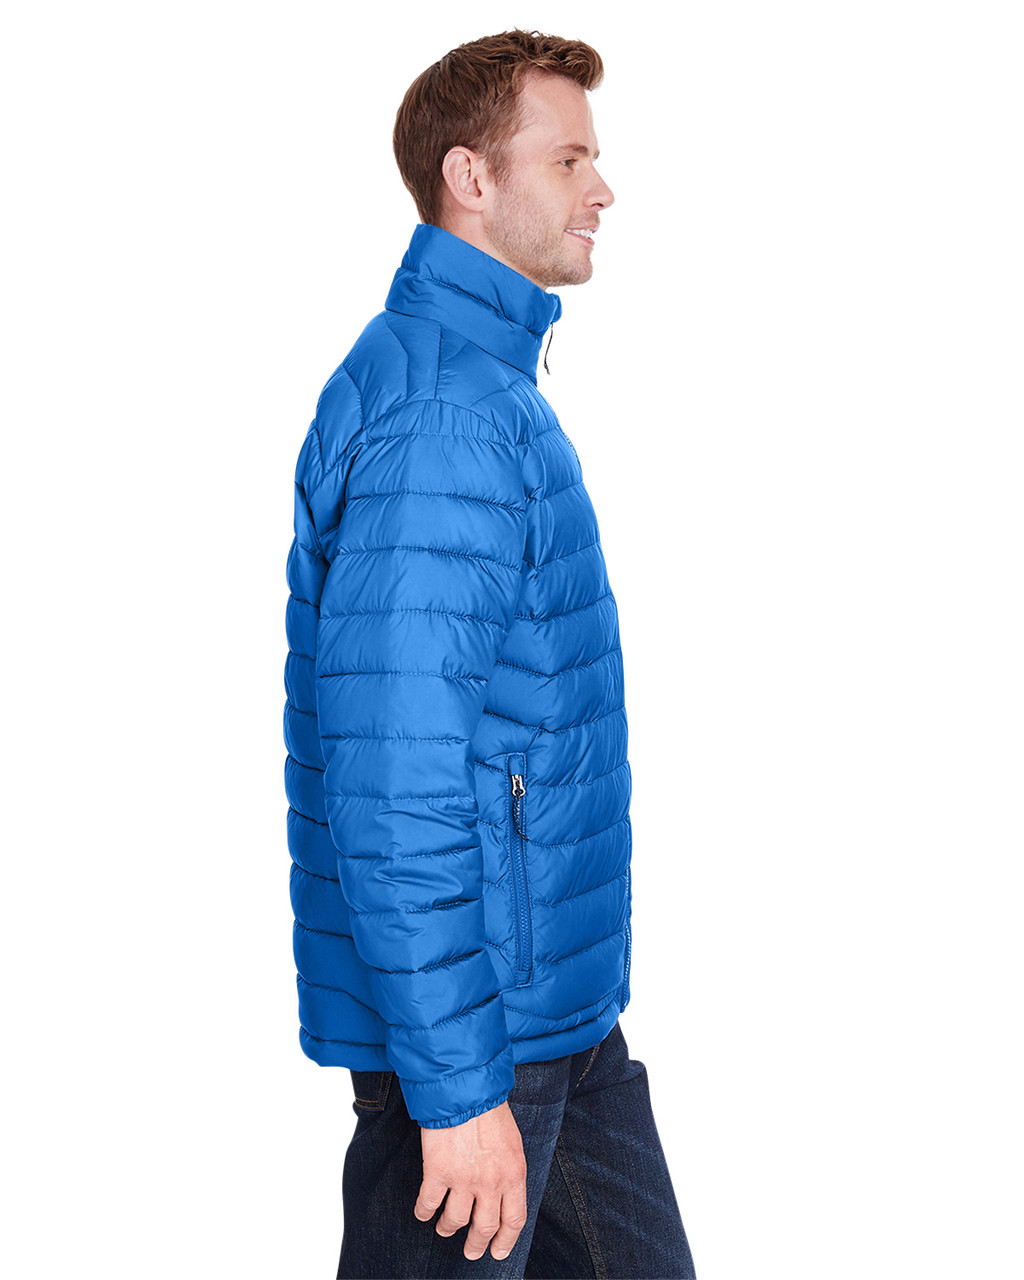 Azure Blue - Side, 1698001 Columbia Men's Powder Lite™ Jacket | Blankclothing.ca